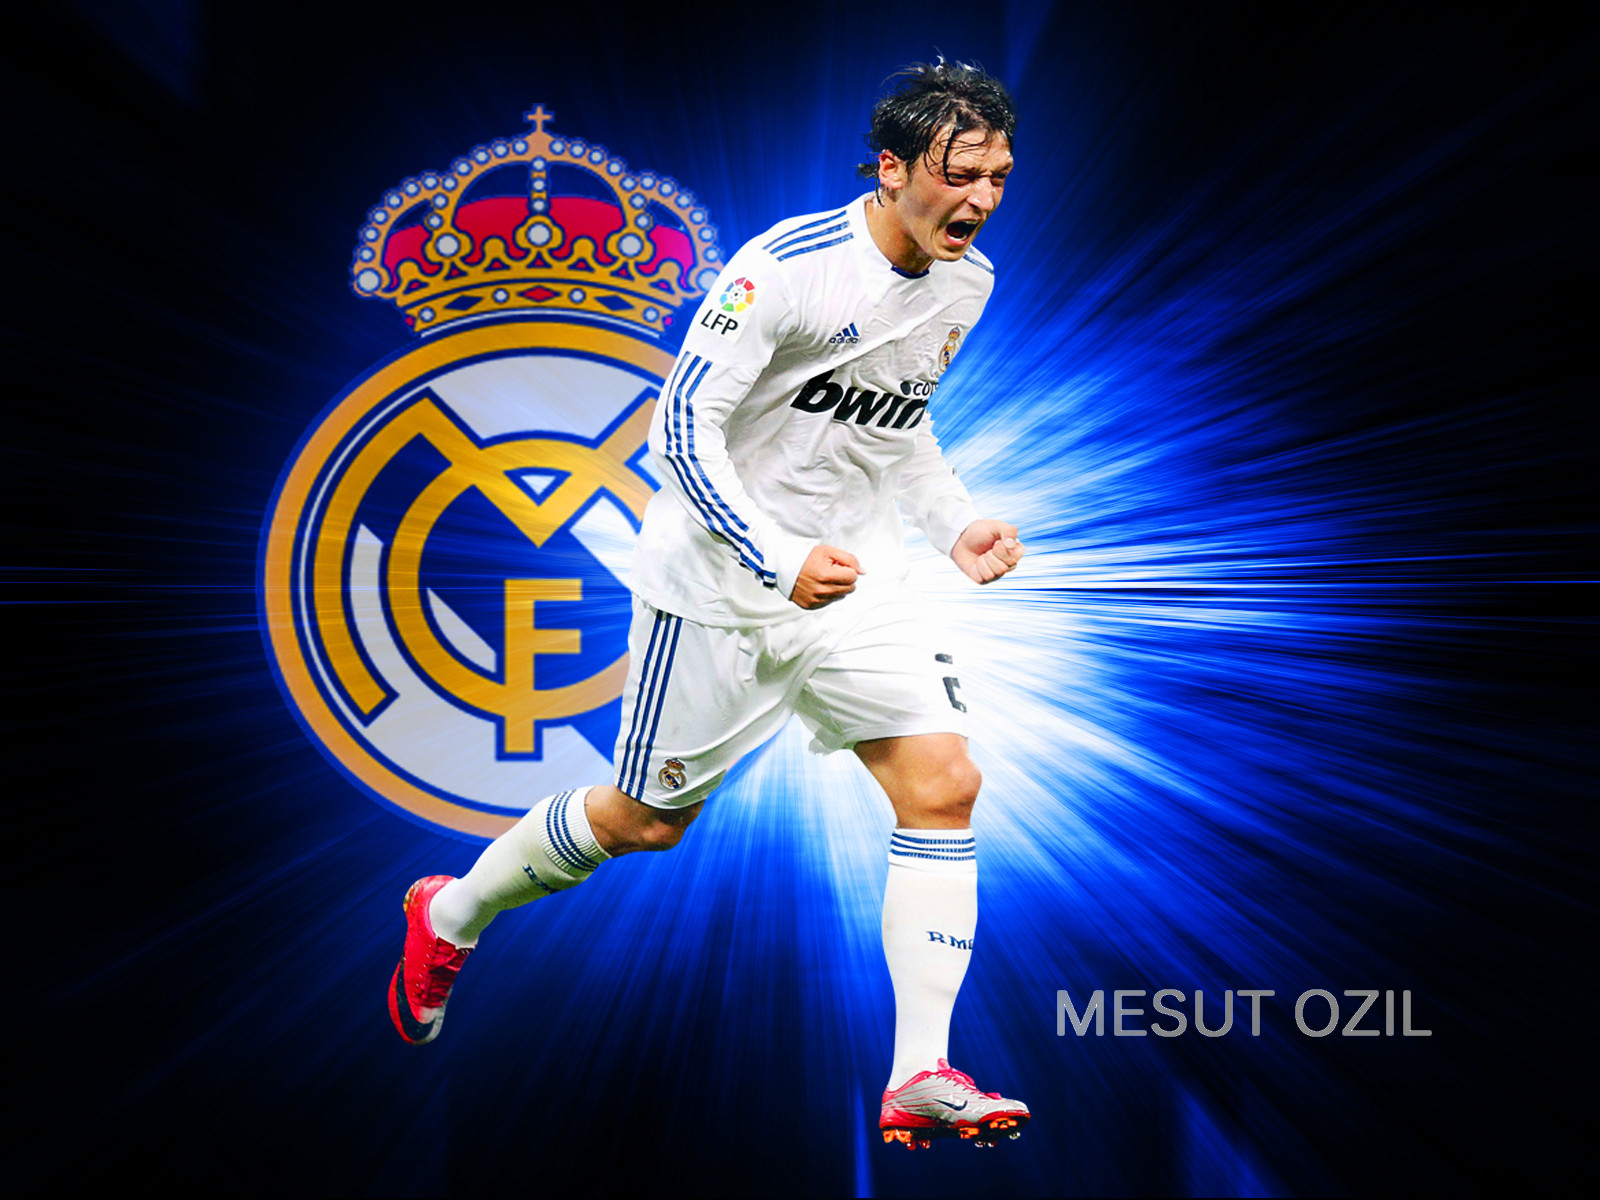 all wallpapers mesut ozil hq amp hd new wallpapers 2013